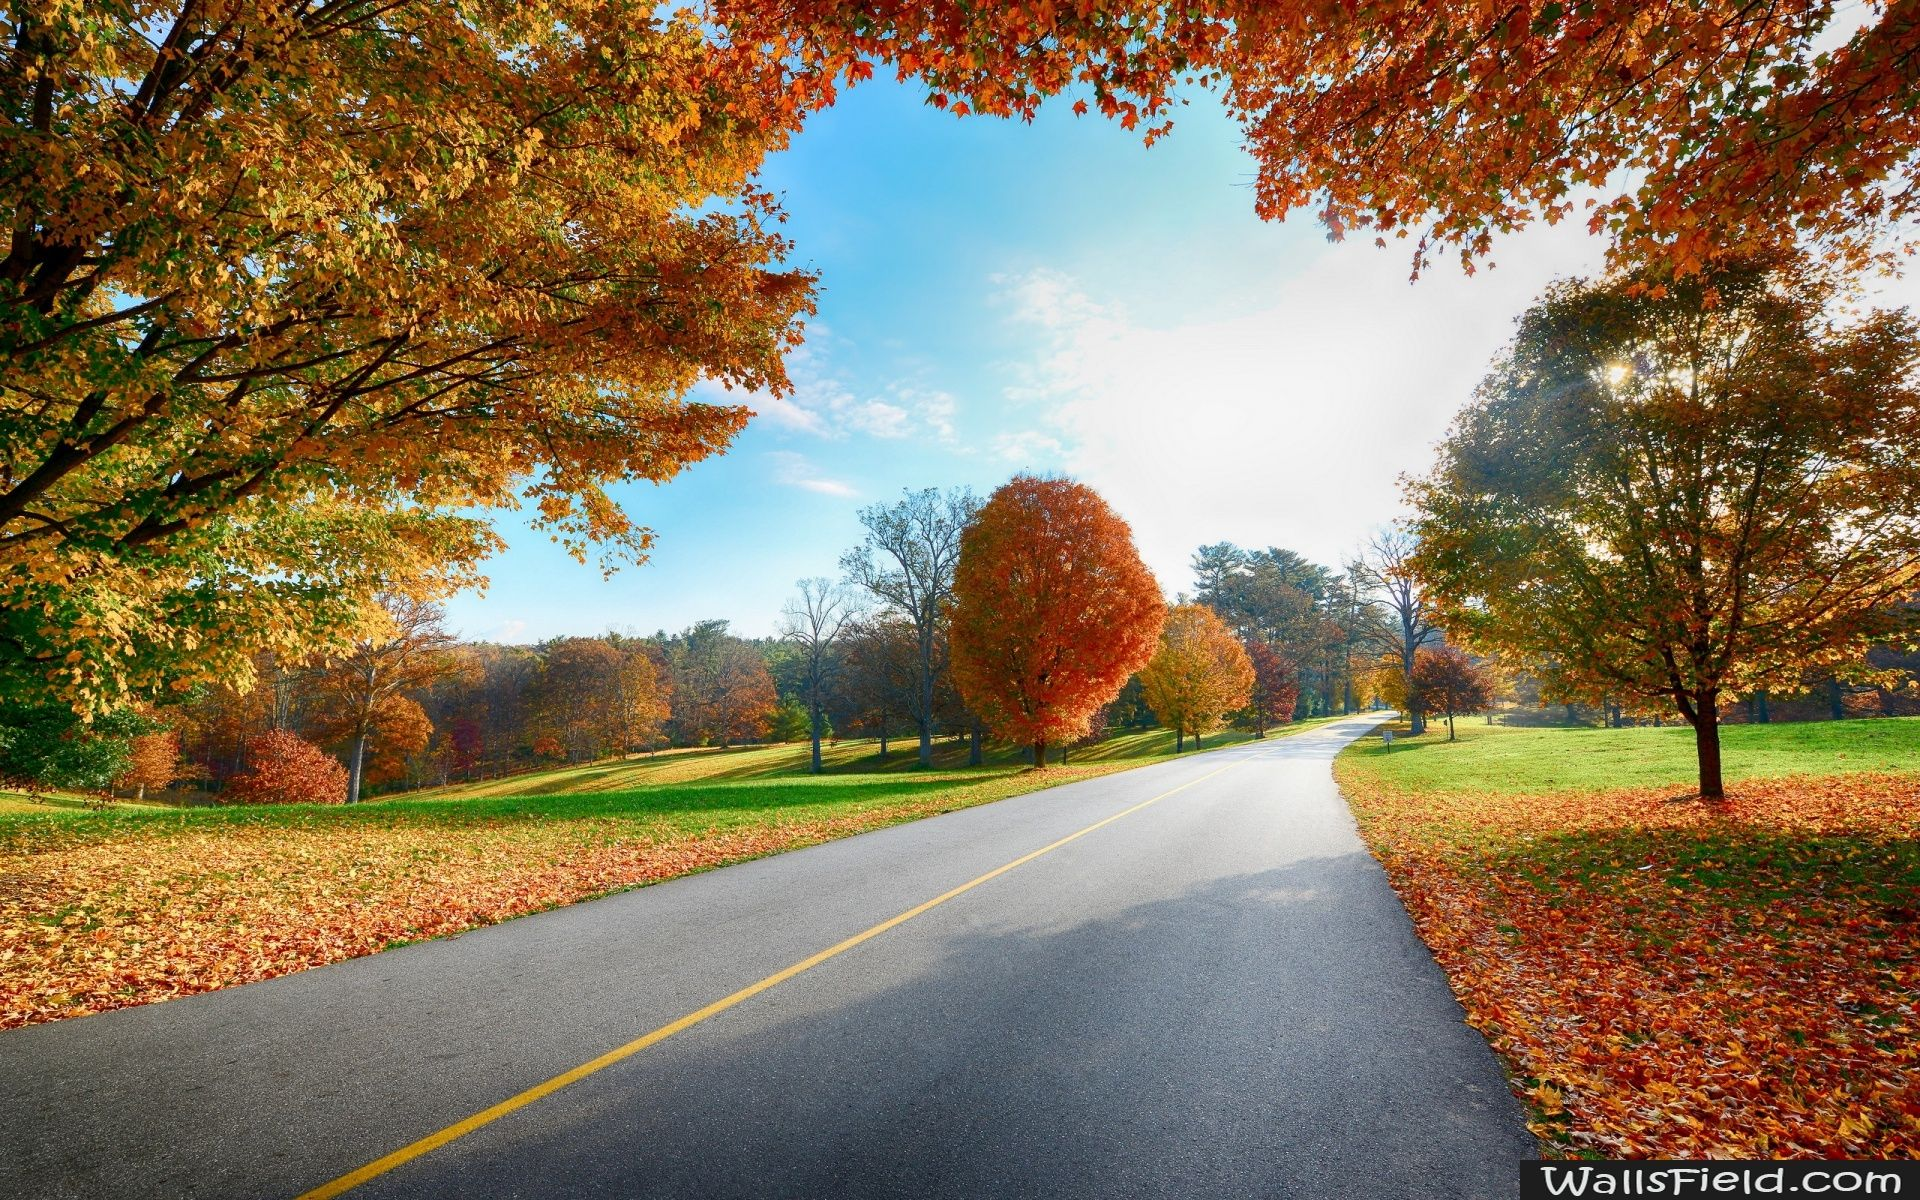 Autumn Trees With Images Scenery Wallpaper Landscape